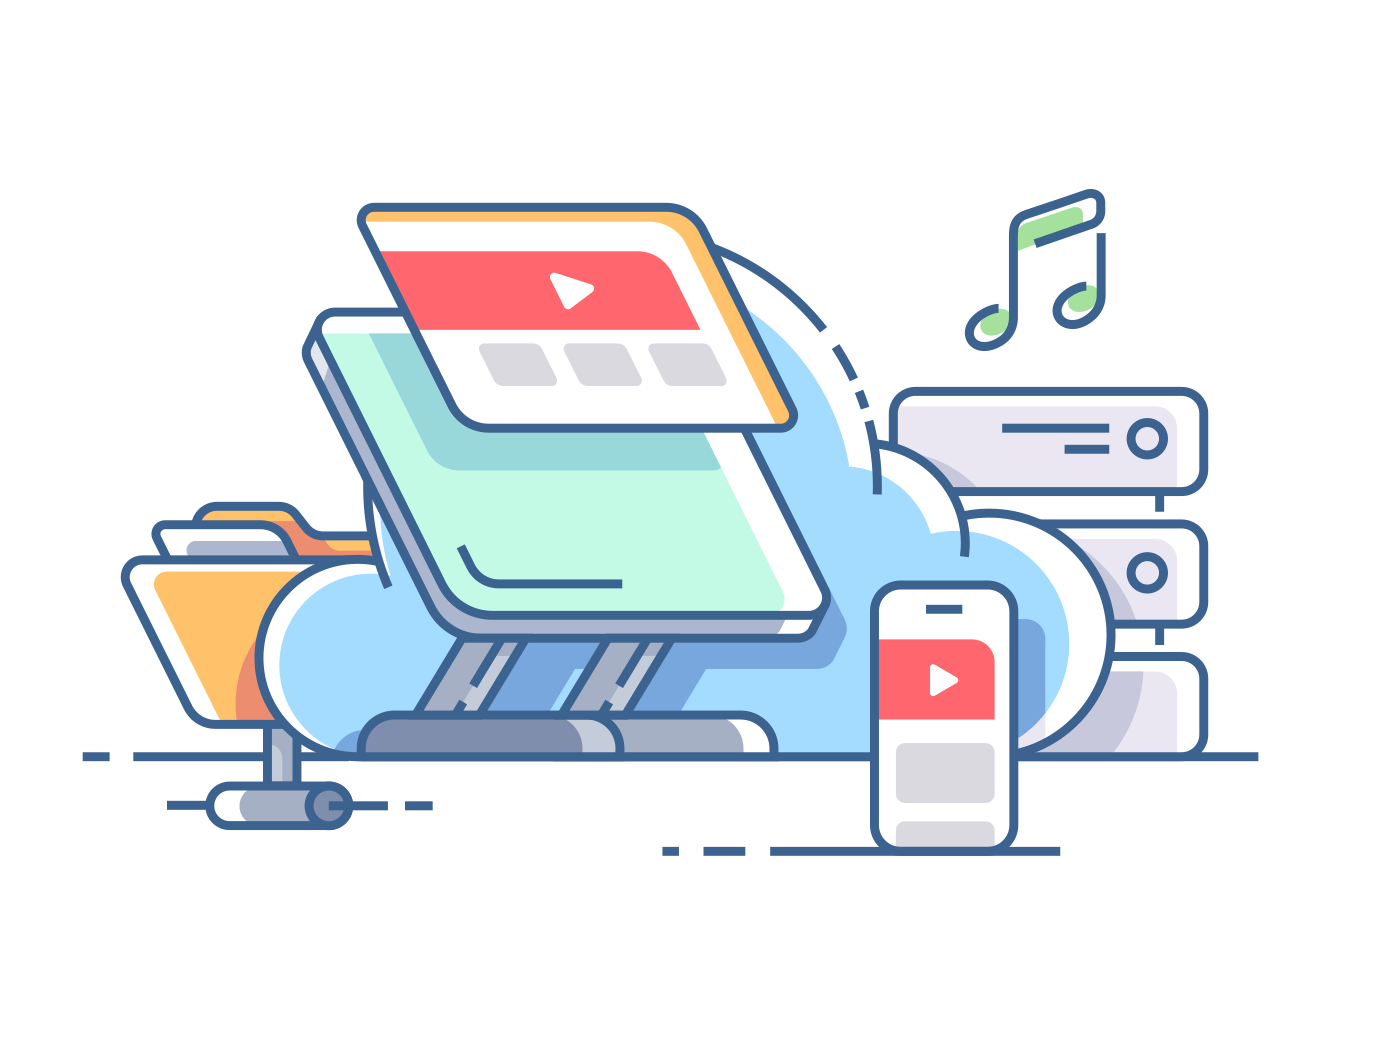 Cloud data storage. Syncing music with gadget. Vector flat illustration